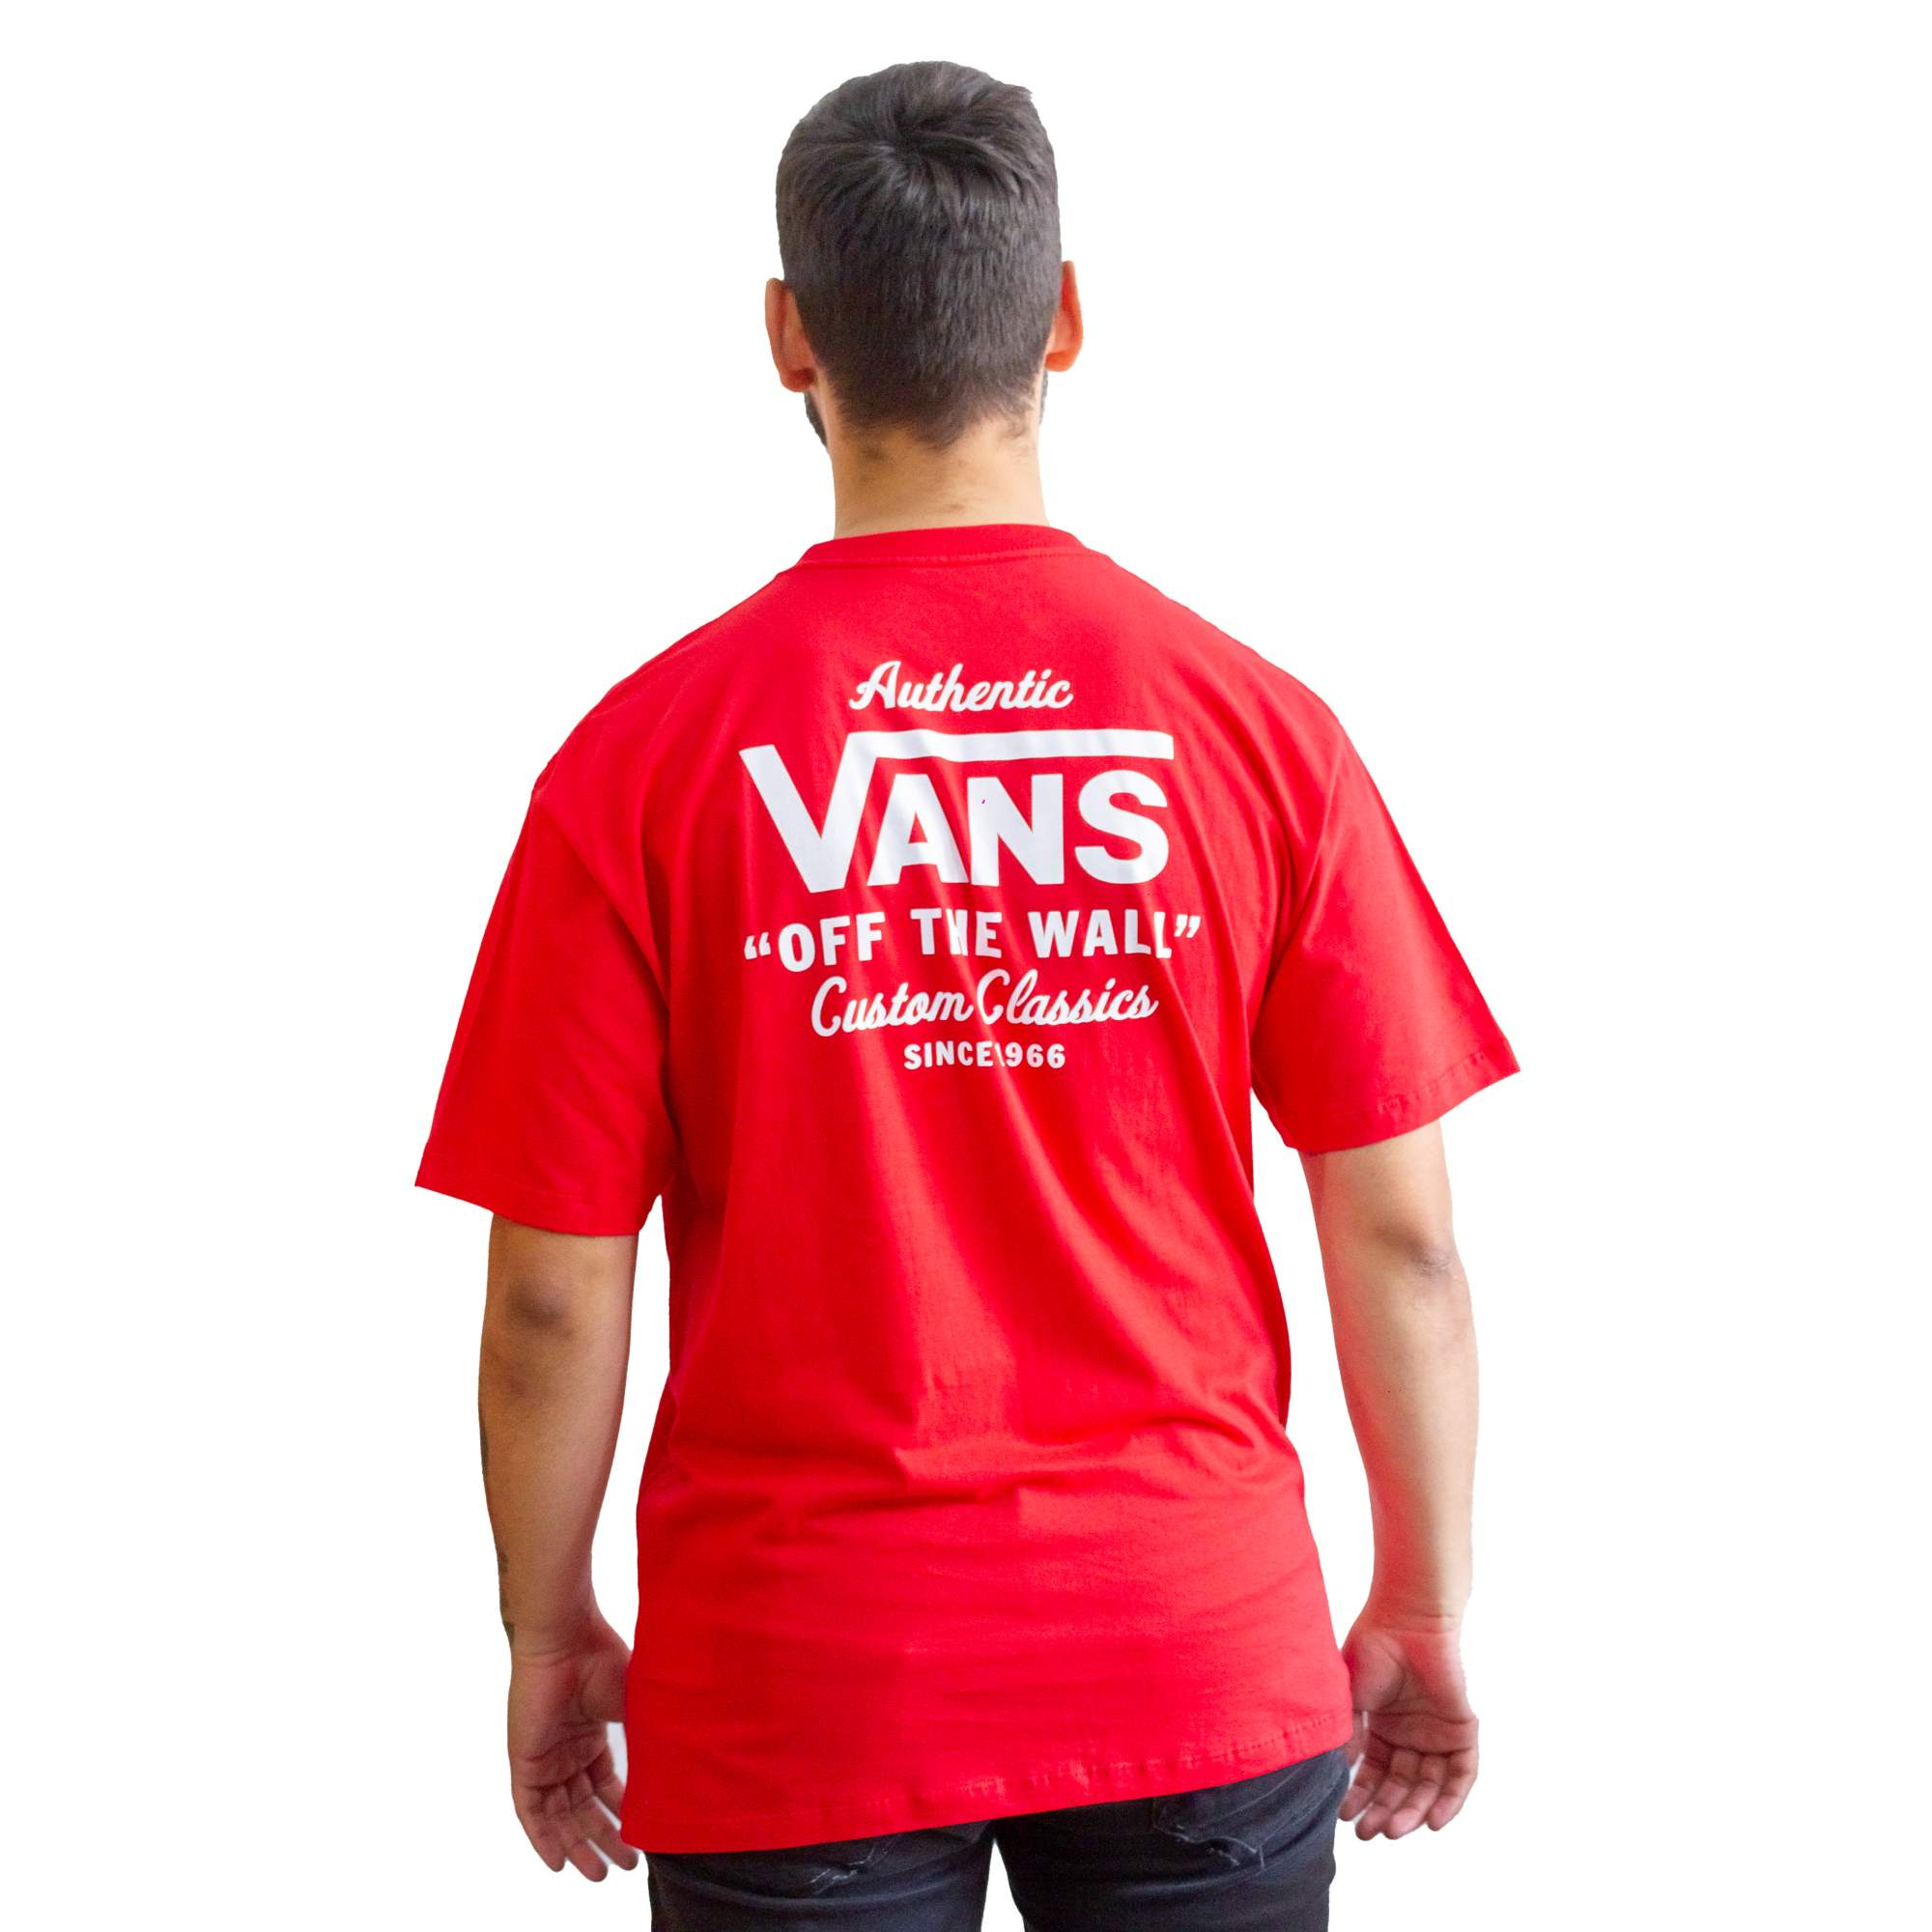 Camiseta Vans Authentic Off The Wall Red